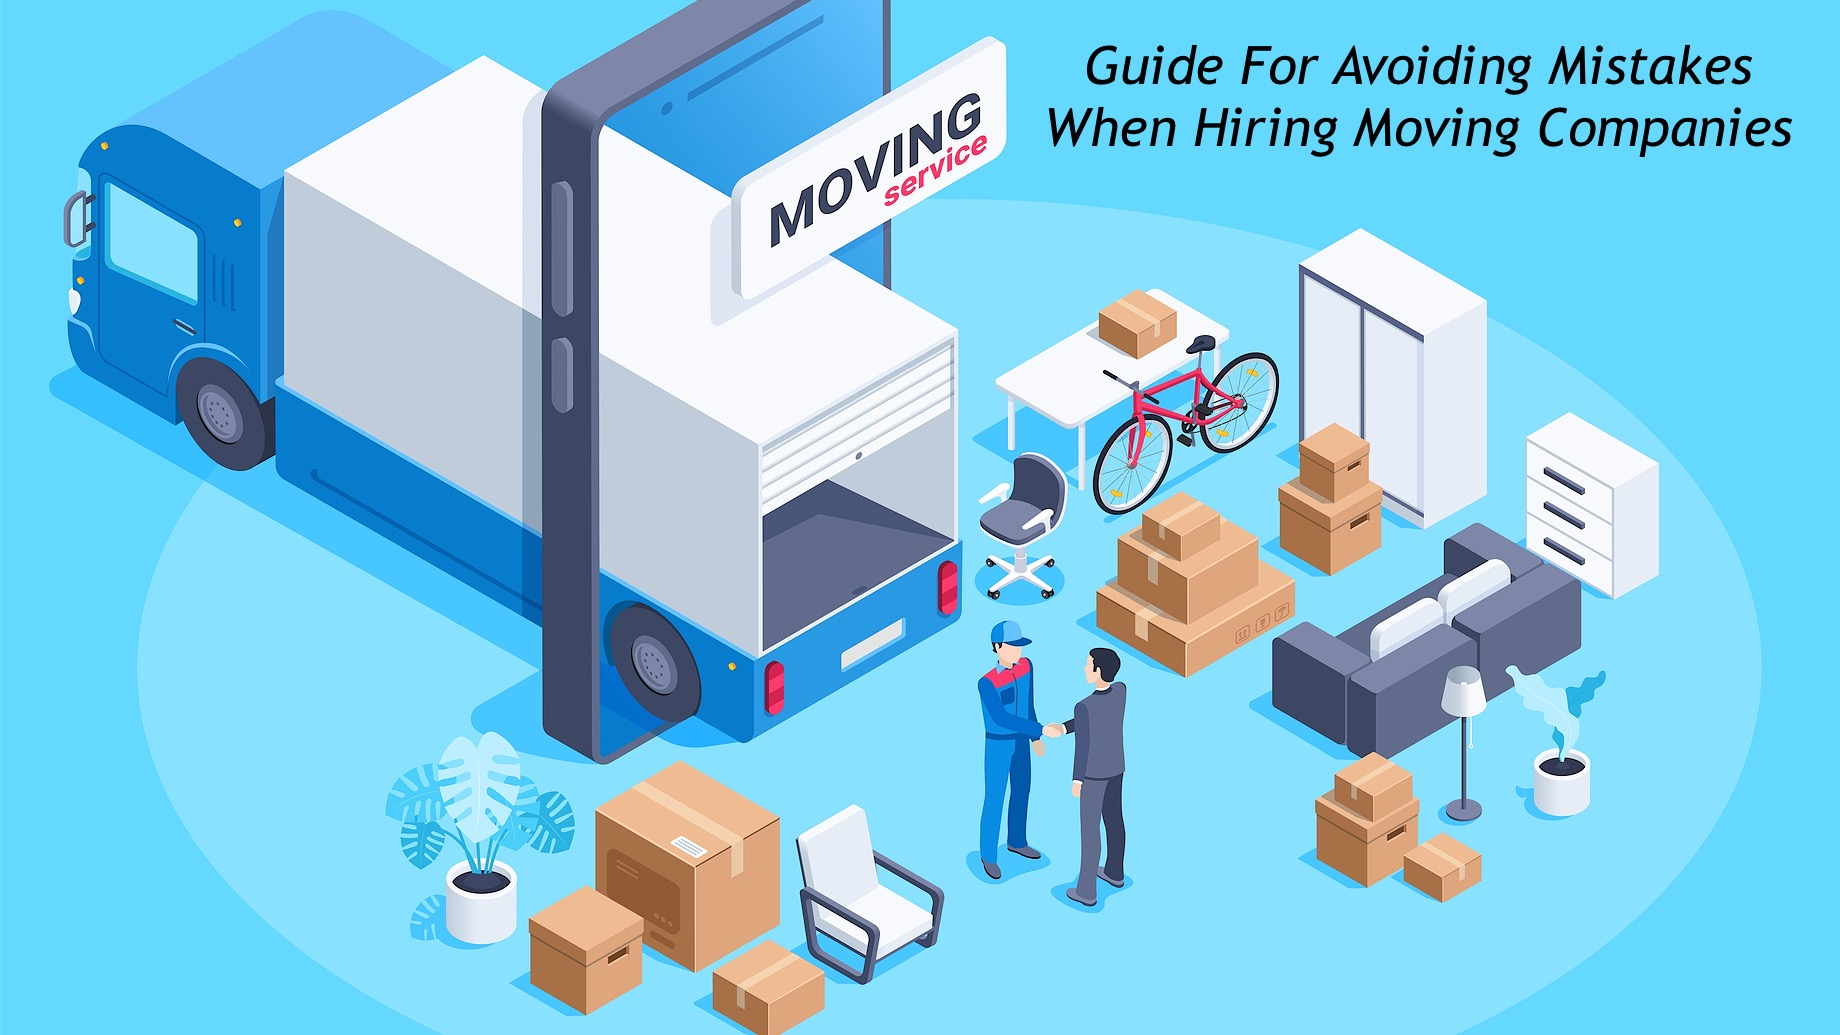 Guide For Avoiding Mistakes When Hiring Moving Companies